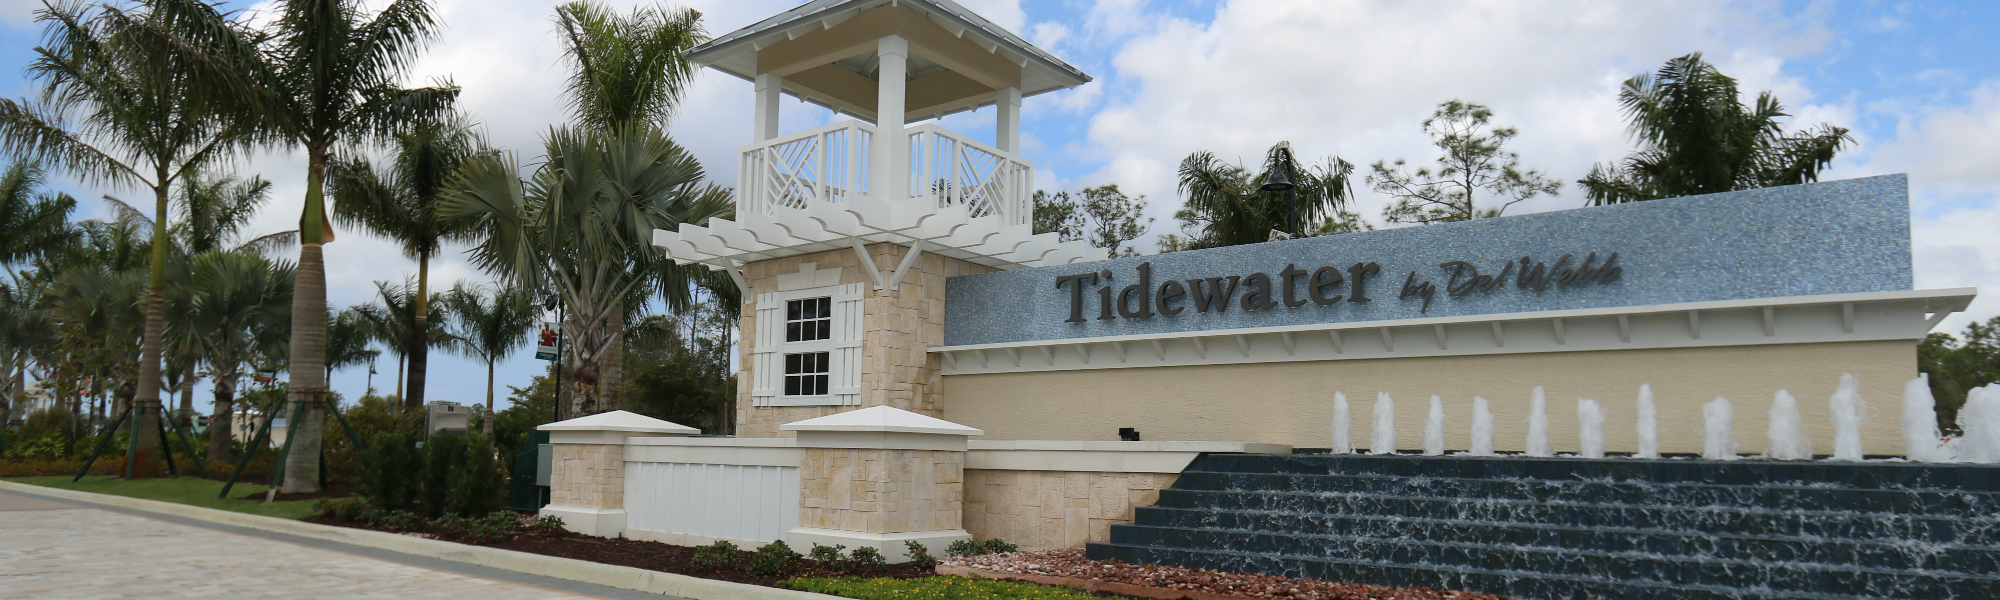 Tidewater Of Estero Florida A 55 Active Adult Community